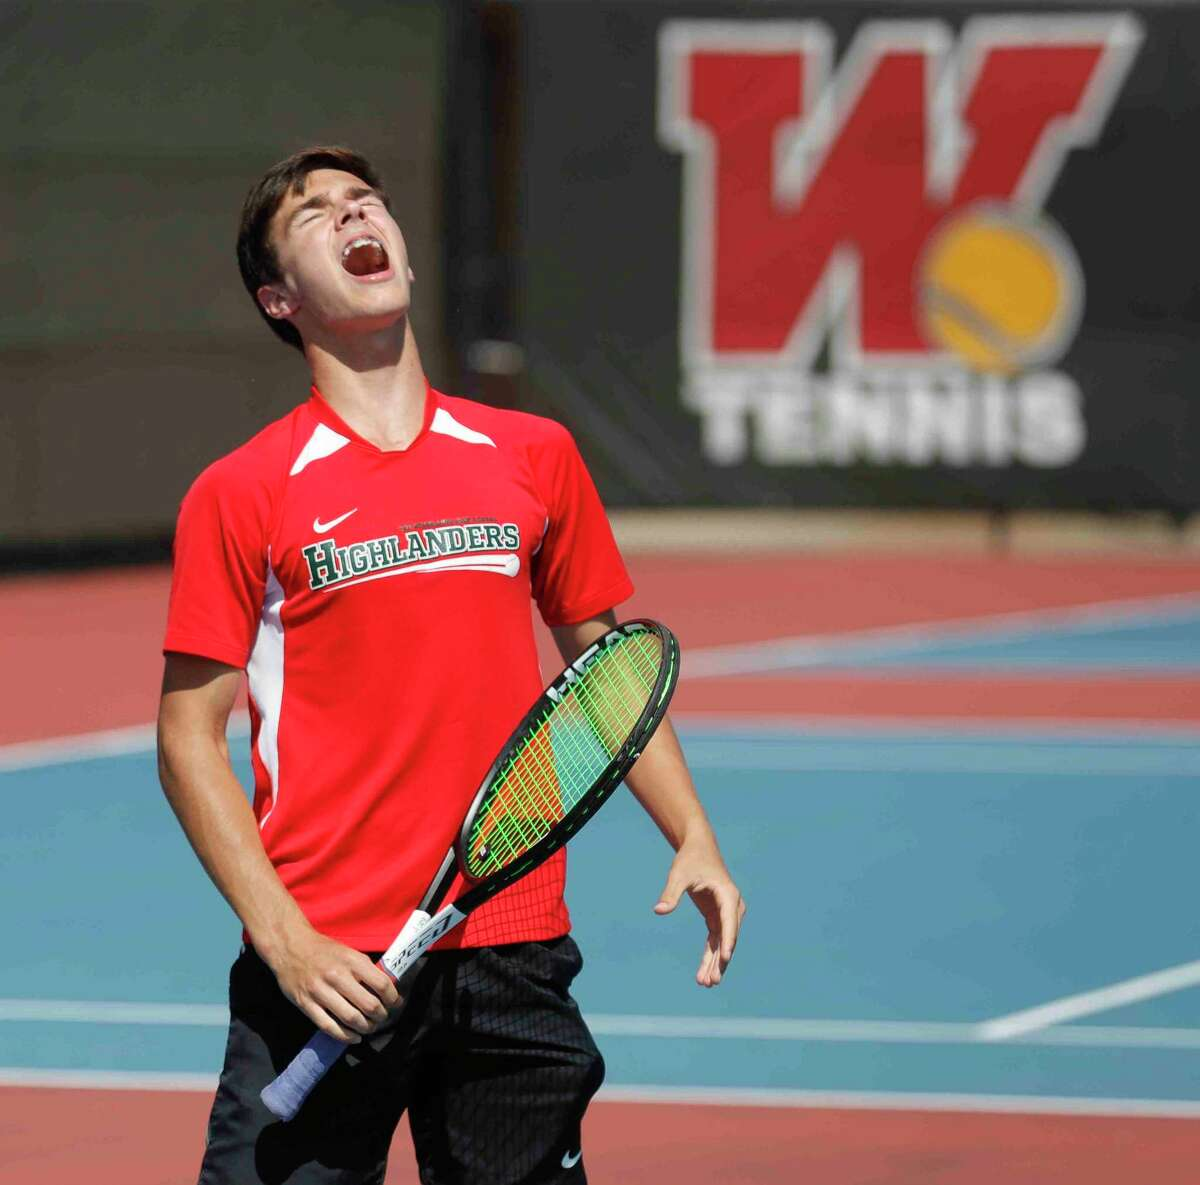 The Woodlands sophomore Emilio Lopez went undefeated in singles play throughout the year and advanced to the state semifinals in doubles.